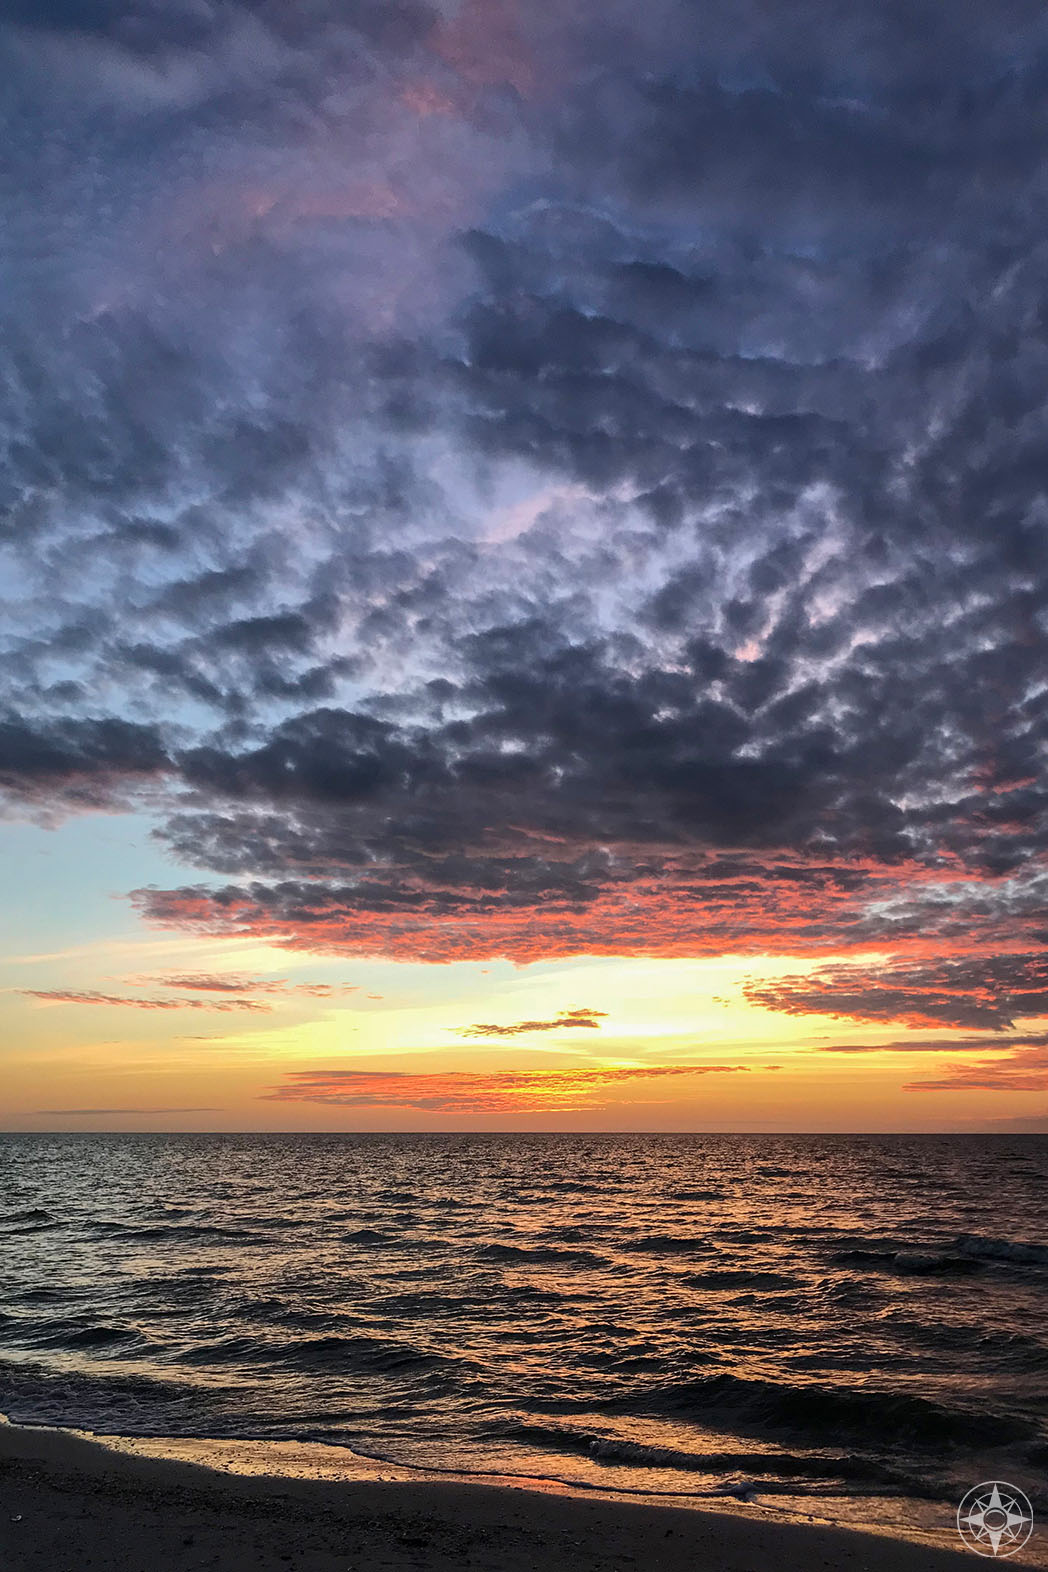 Sunset sky over gulf of Mexico